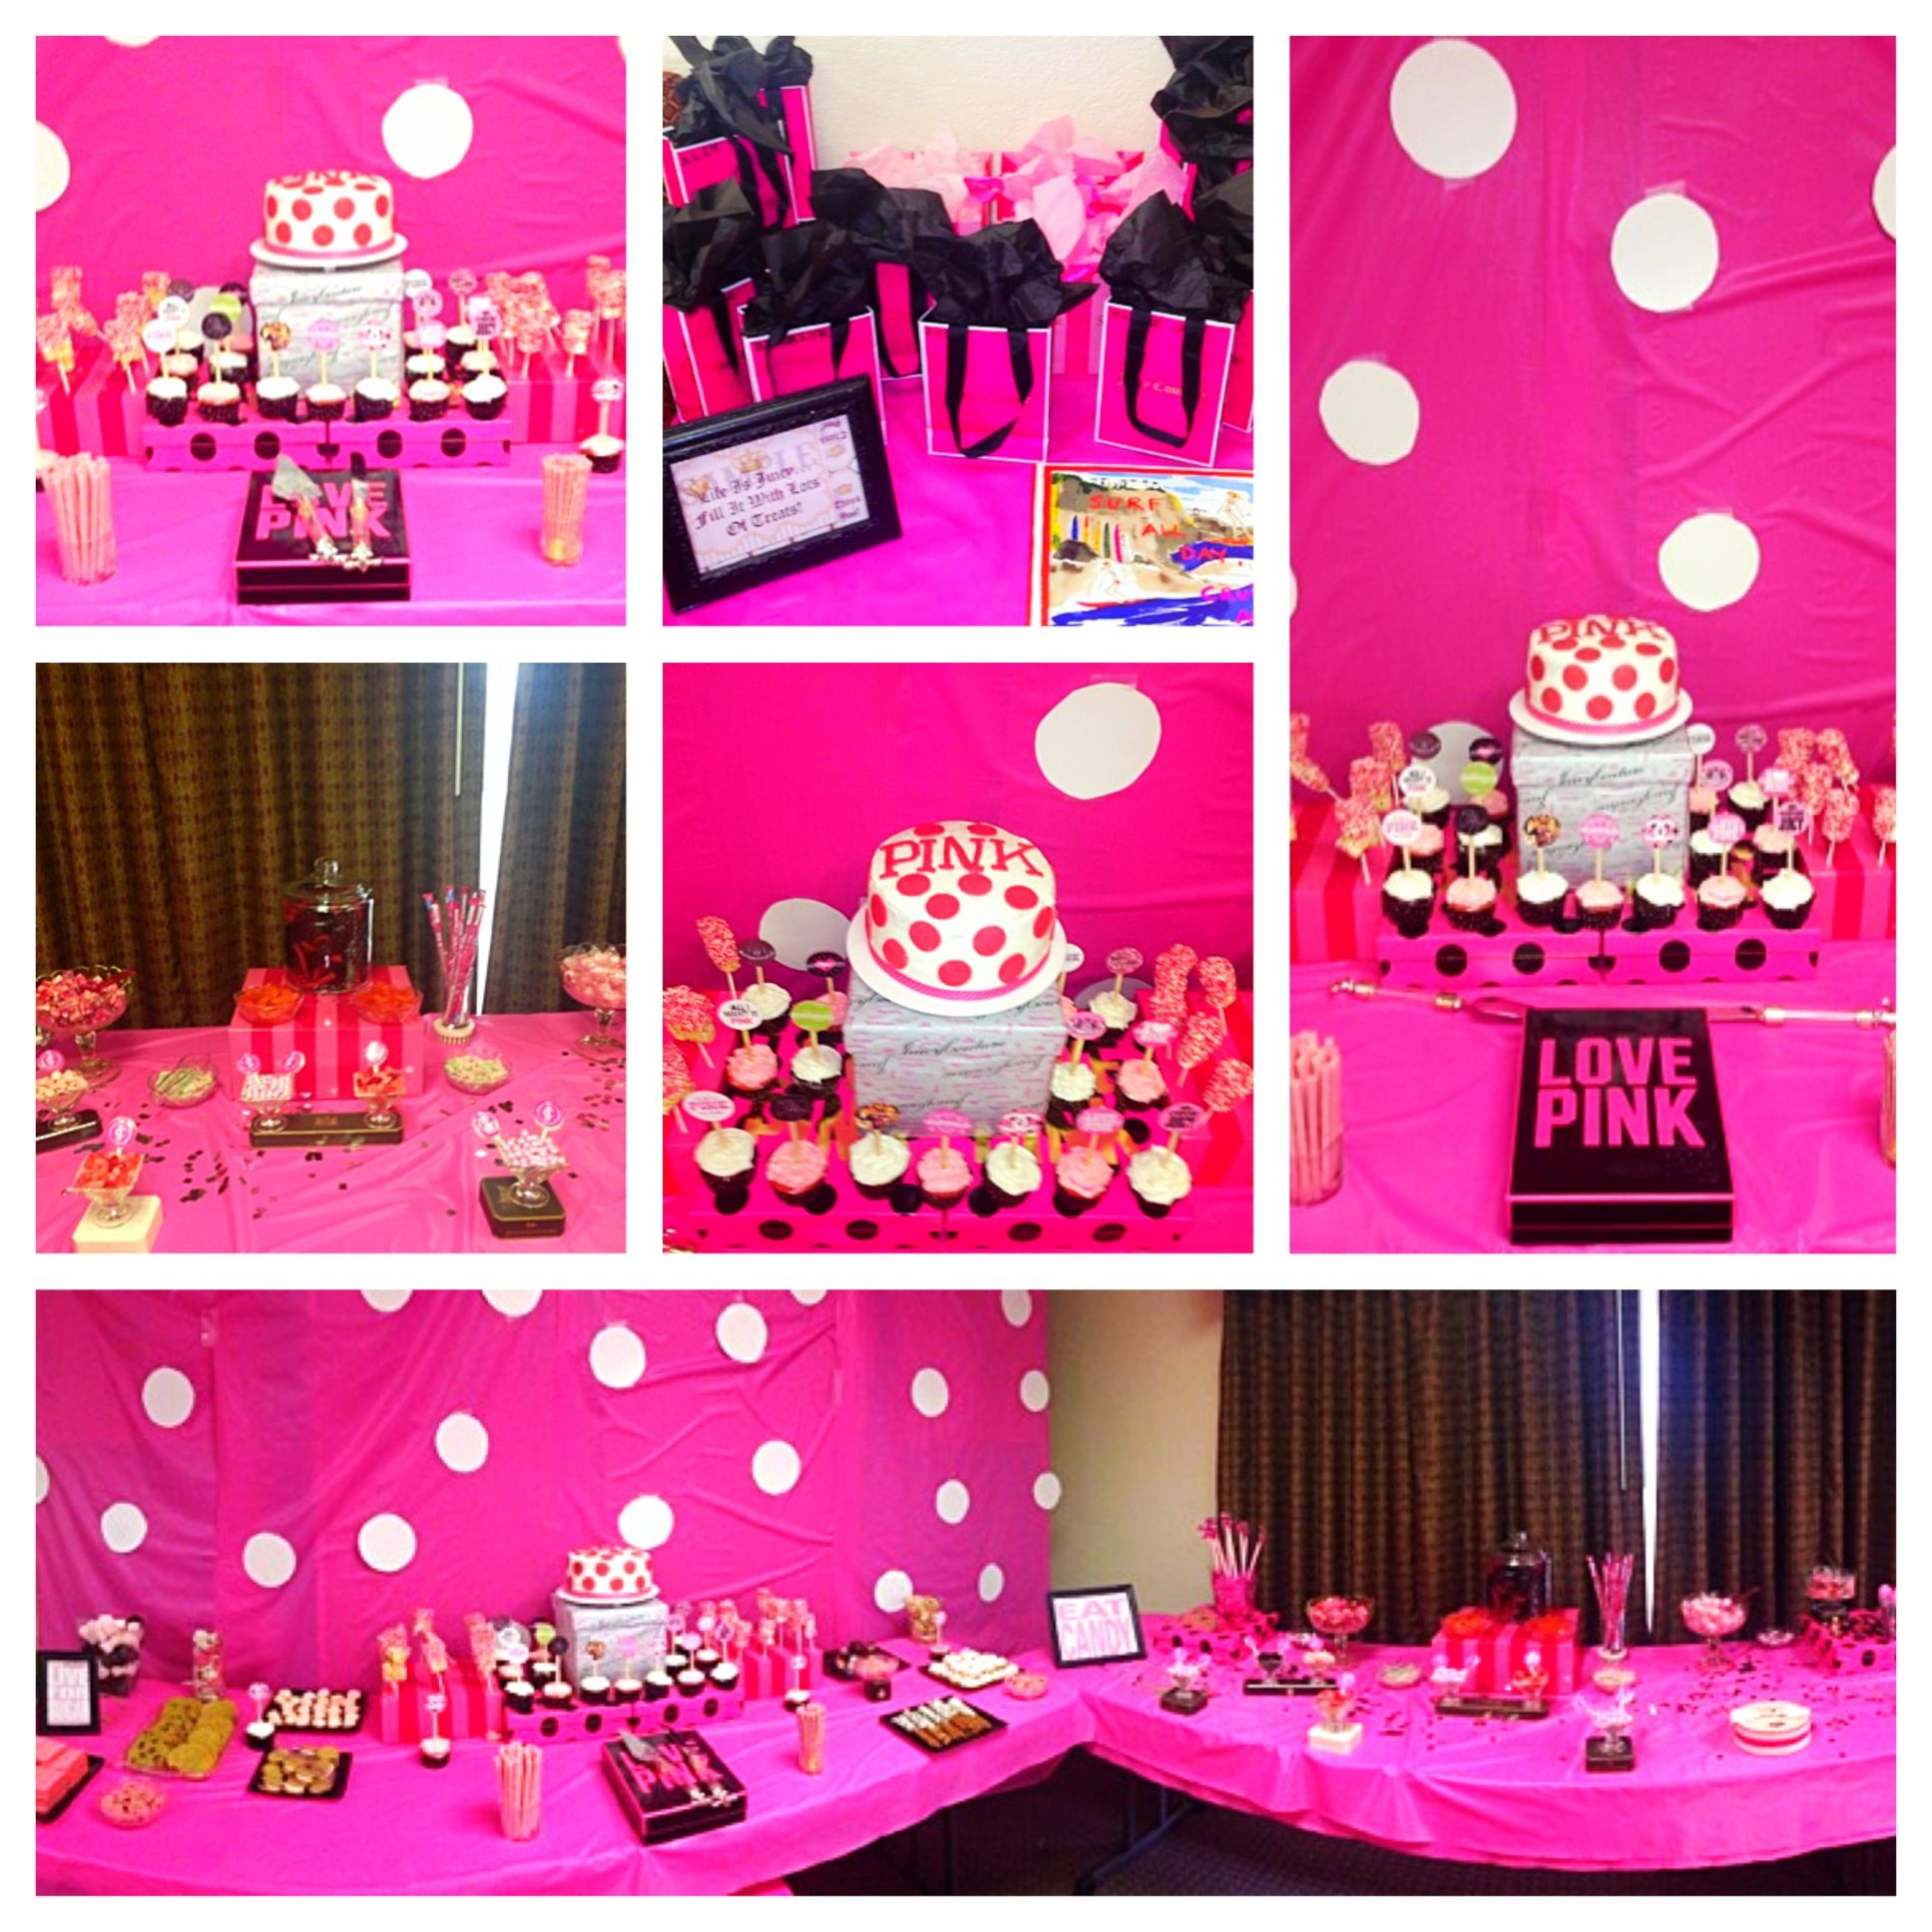 Serenity's 12th Victoria Secret Juicy Couture Birthday